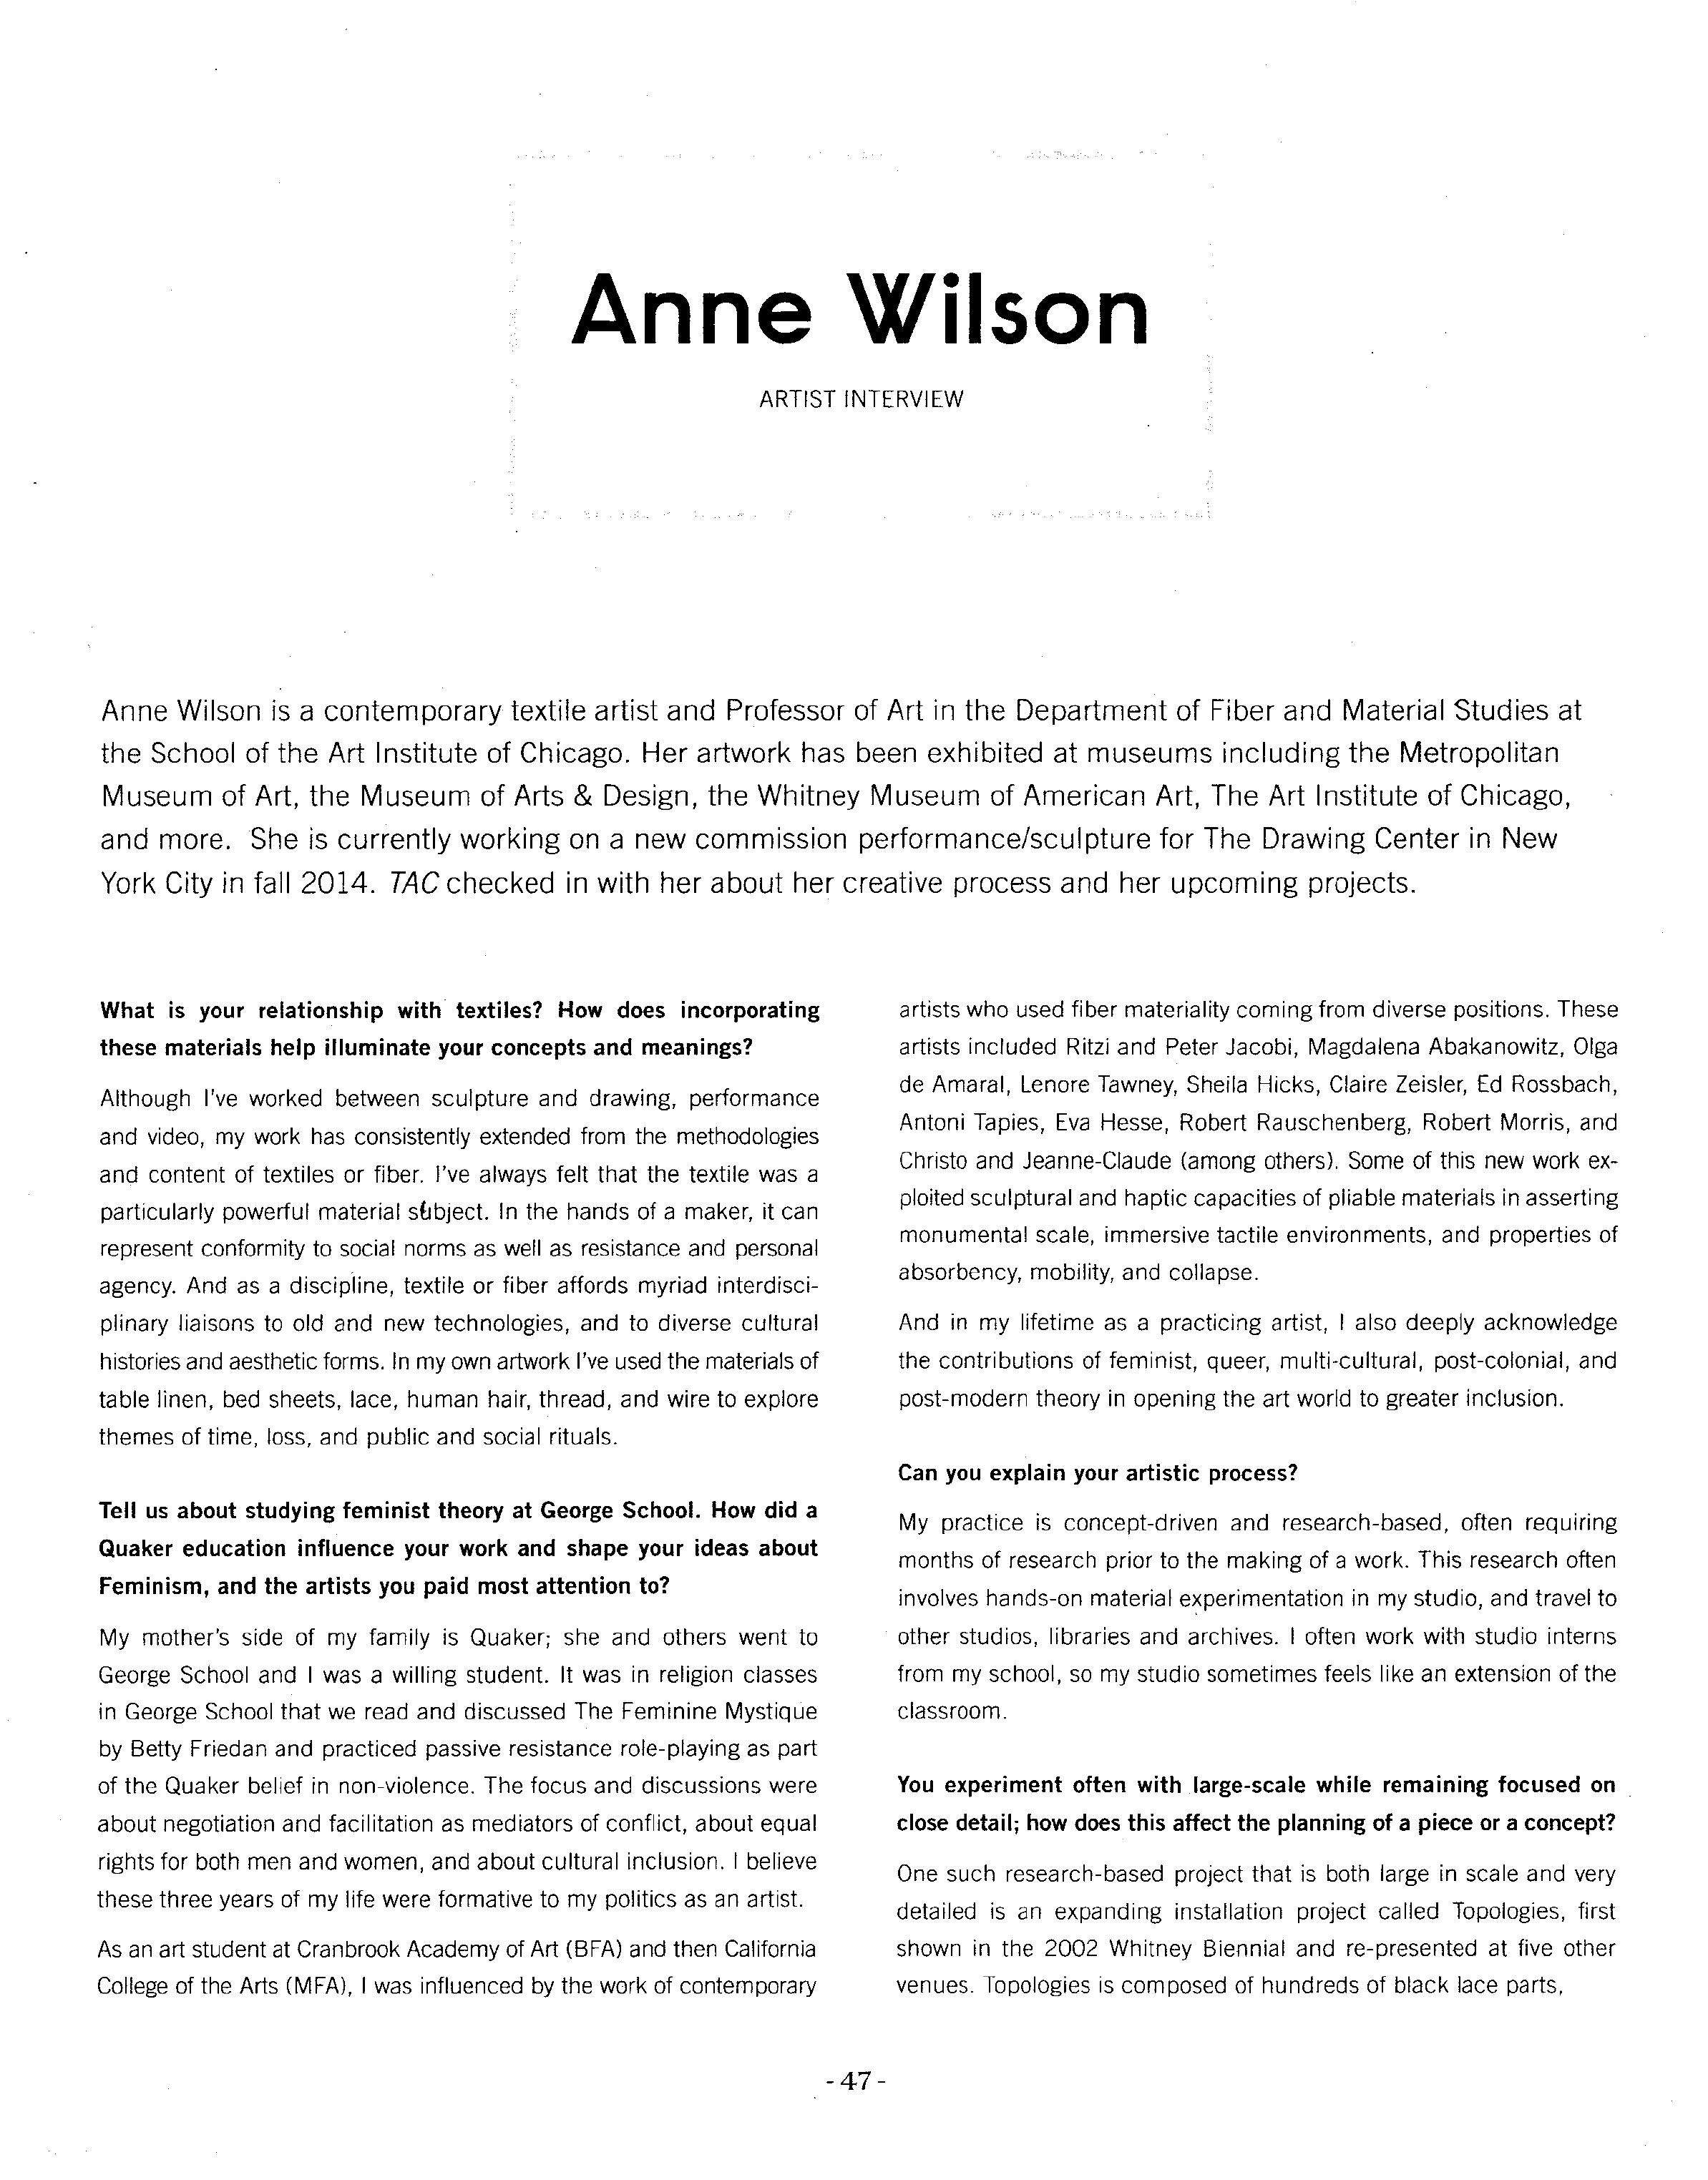 Anne Wilson Interivew 2014 PAGE 1 Final